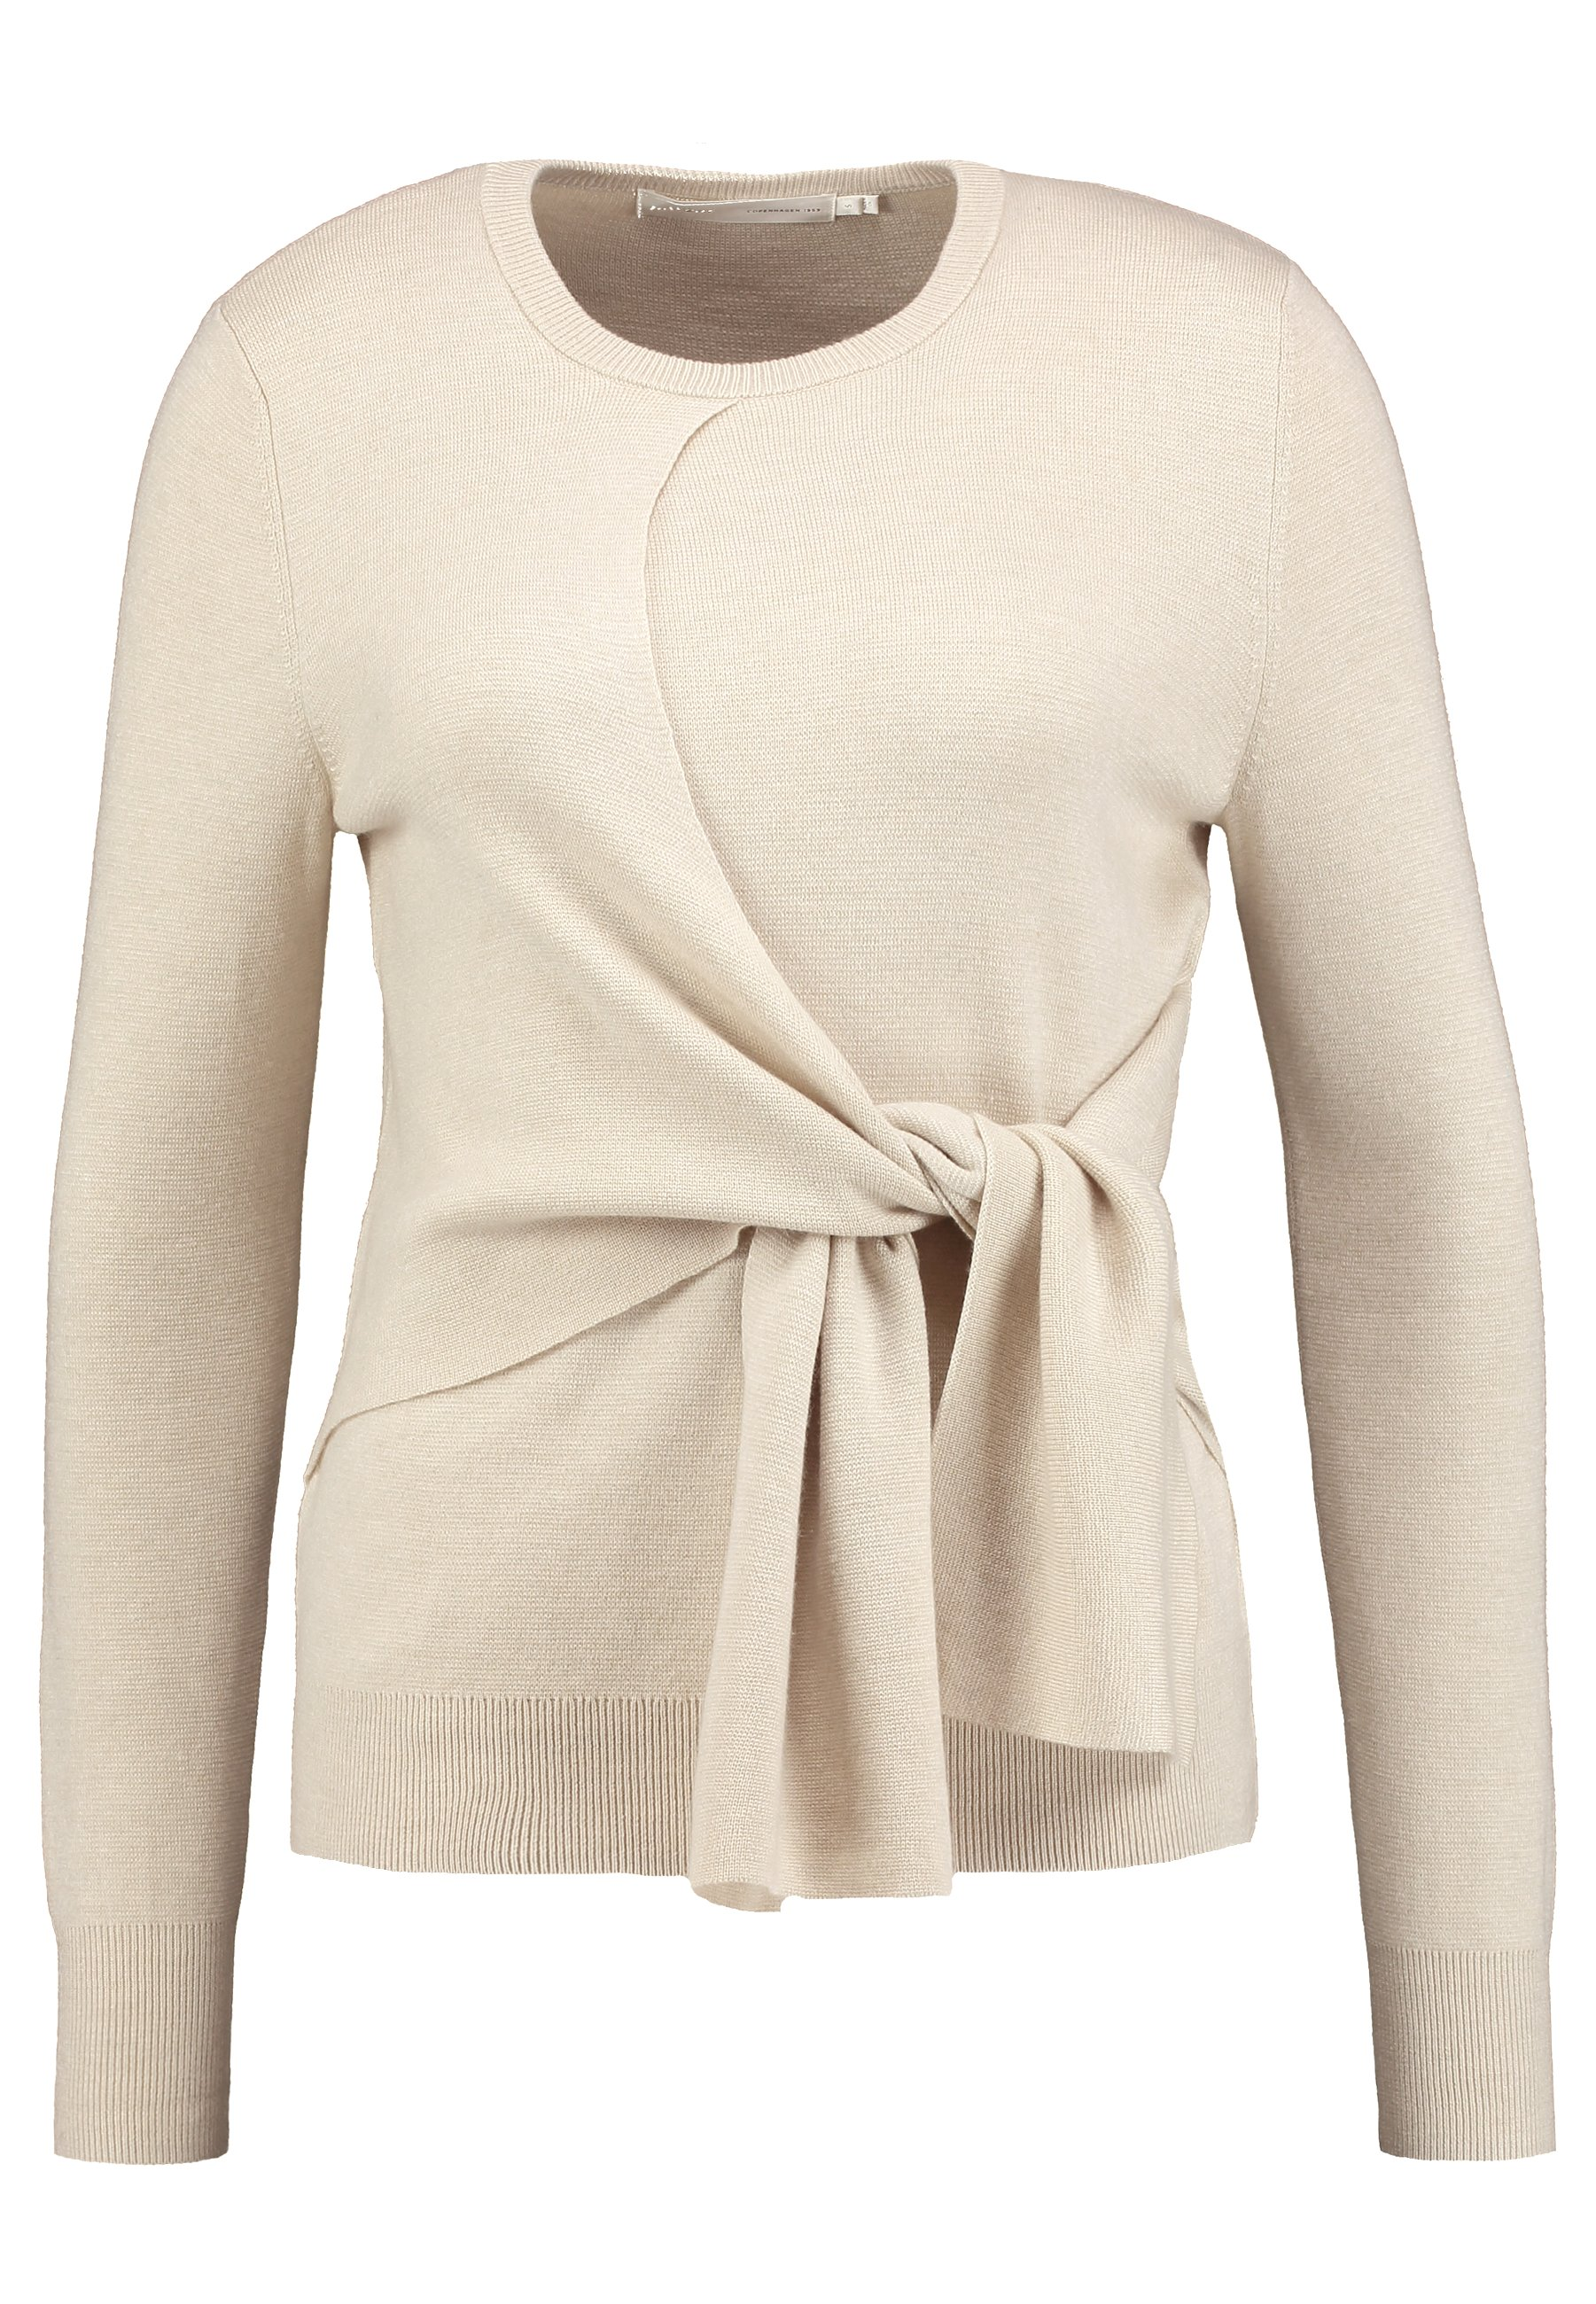 Inwear Emaleeiw - Pullover French Nougat